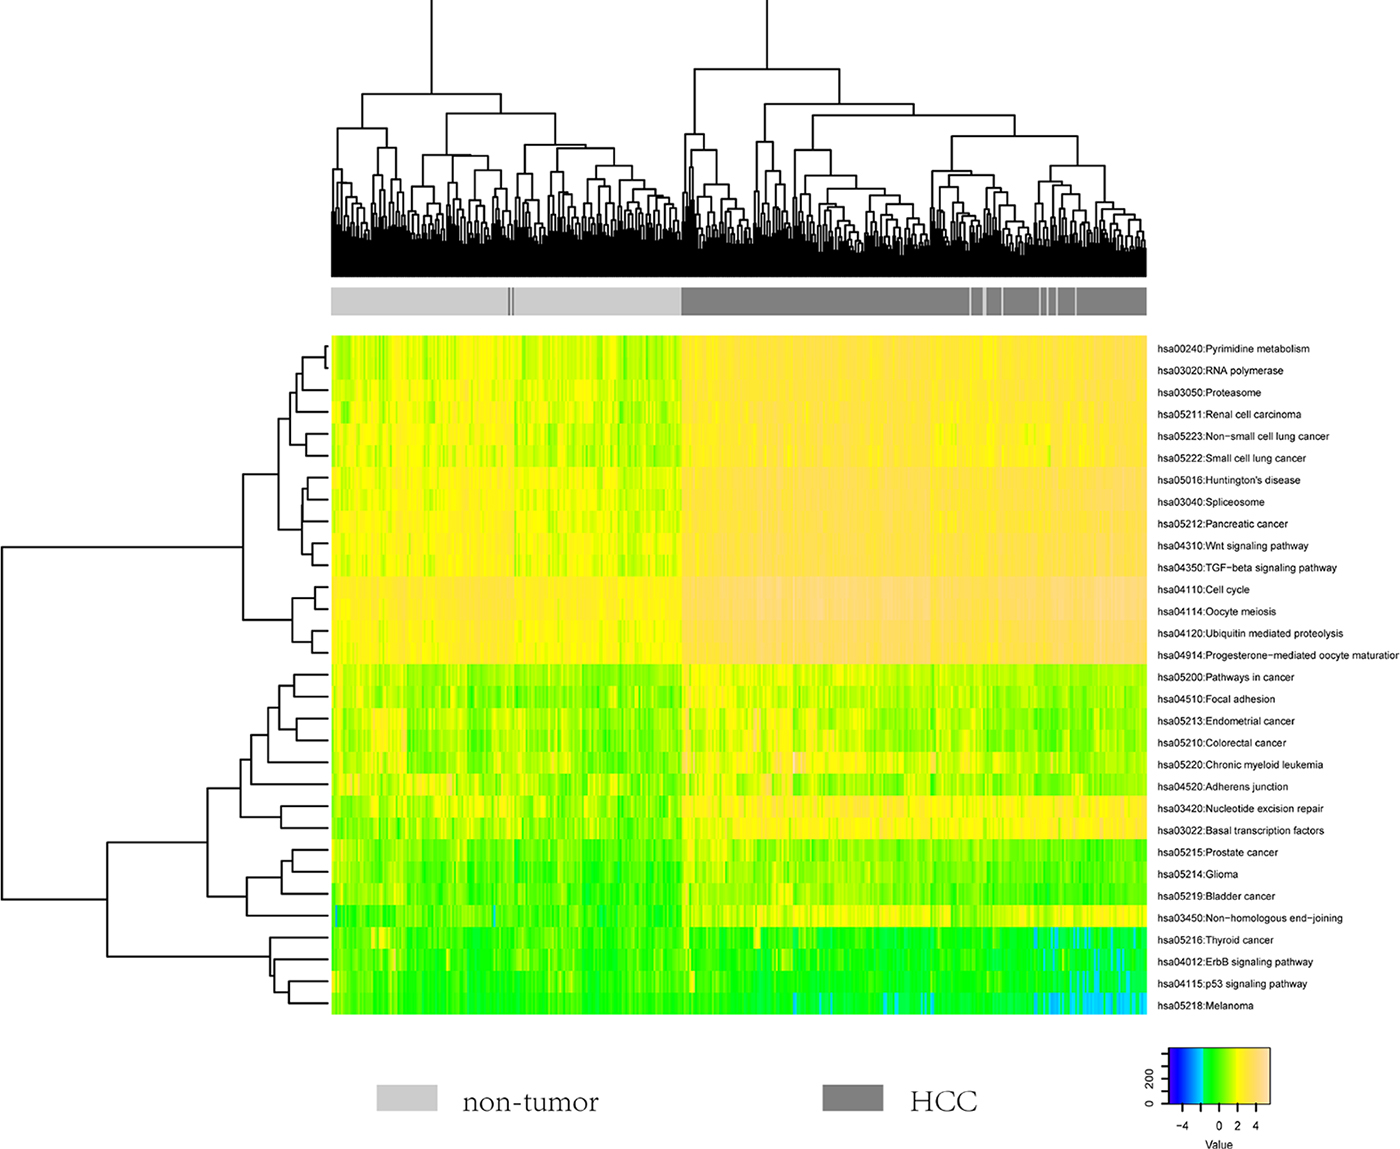 The heatmap showing the hierarchical clustering of all samples using the scores of 31 identified pathways.